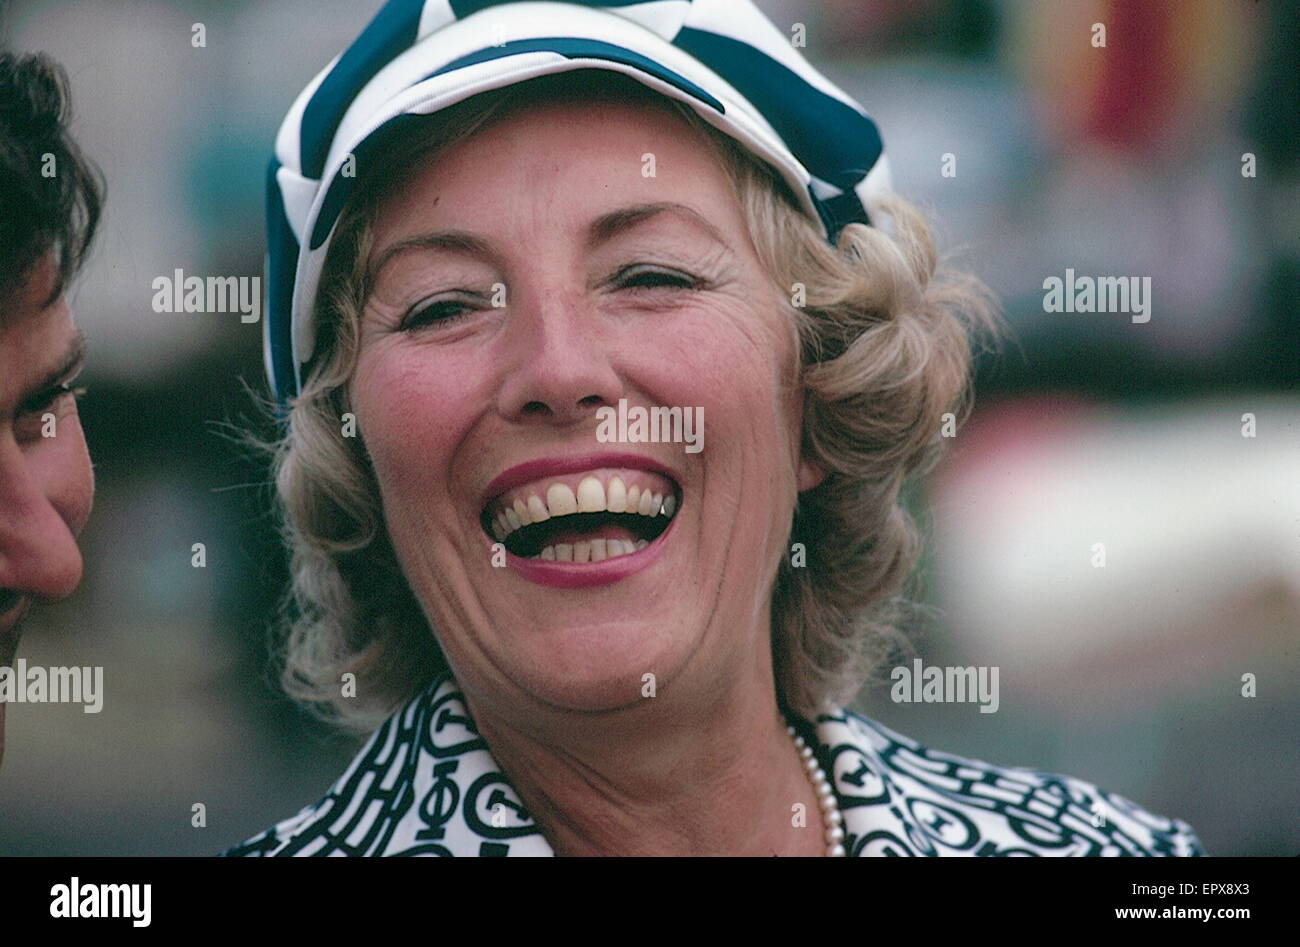 AJAXNETPHOTO. 1974. PORTCHESTER, ENGLAND. - FORCES SWEETHEART - (DAME, DBE 1975.) VERA LYNN ENJOYS A JOKE WITH SAILOR - Stock Image